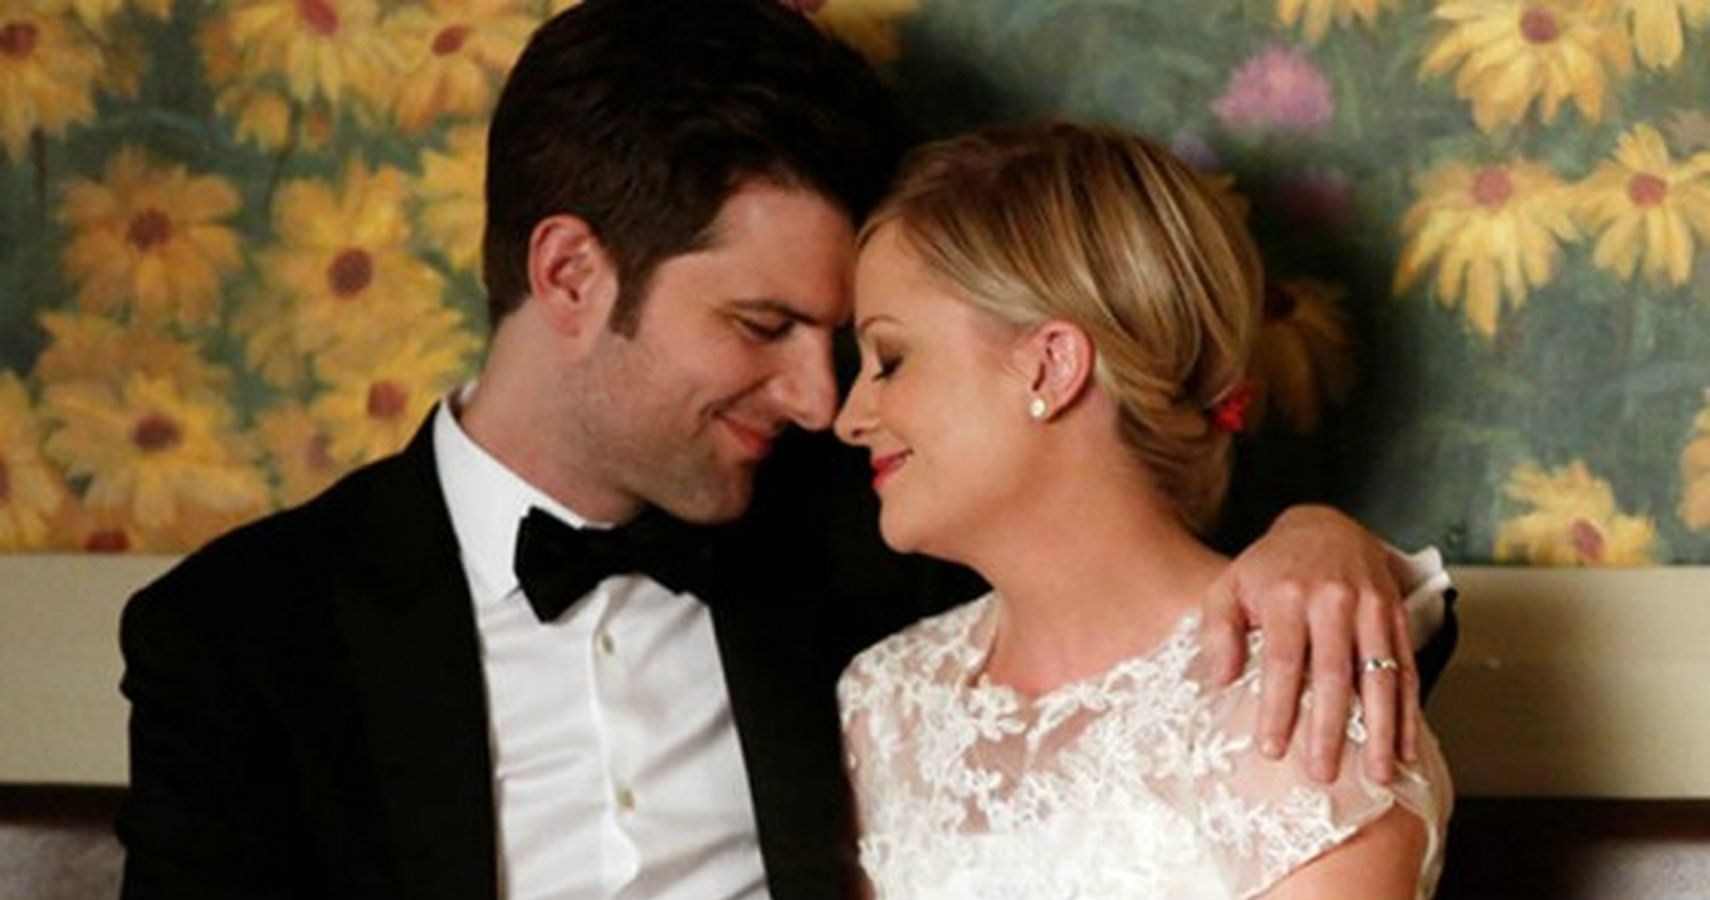 Leslie and Ben from Parks and Recreation